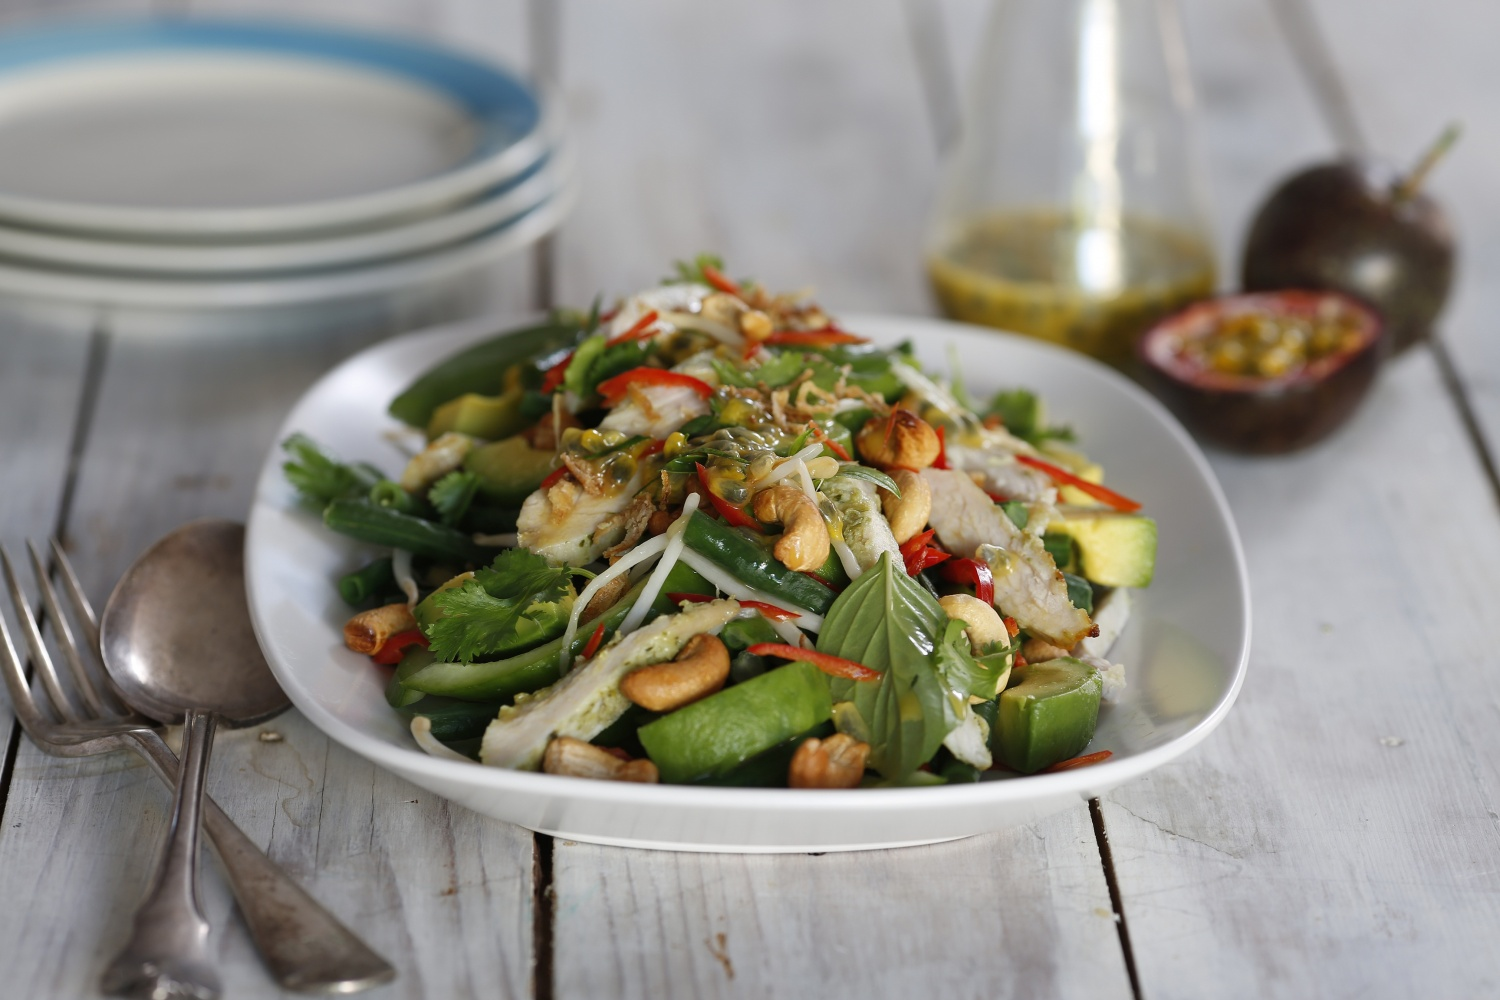 Thai Turkey Salad with snake beans, avocado and passionfruit kaffir lime dressing.jpg